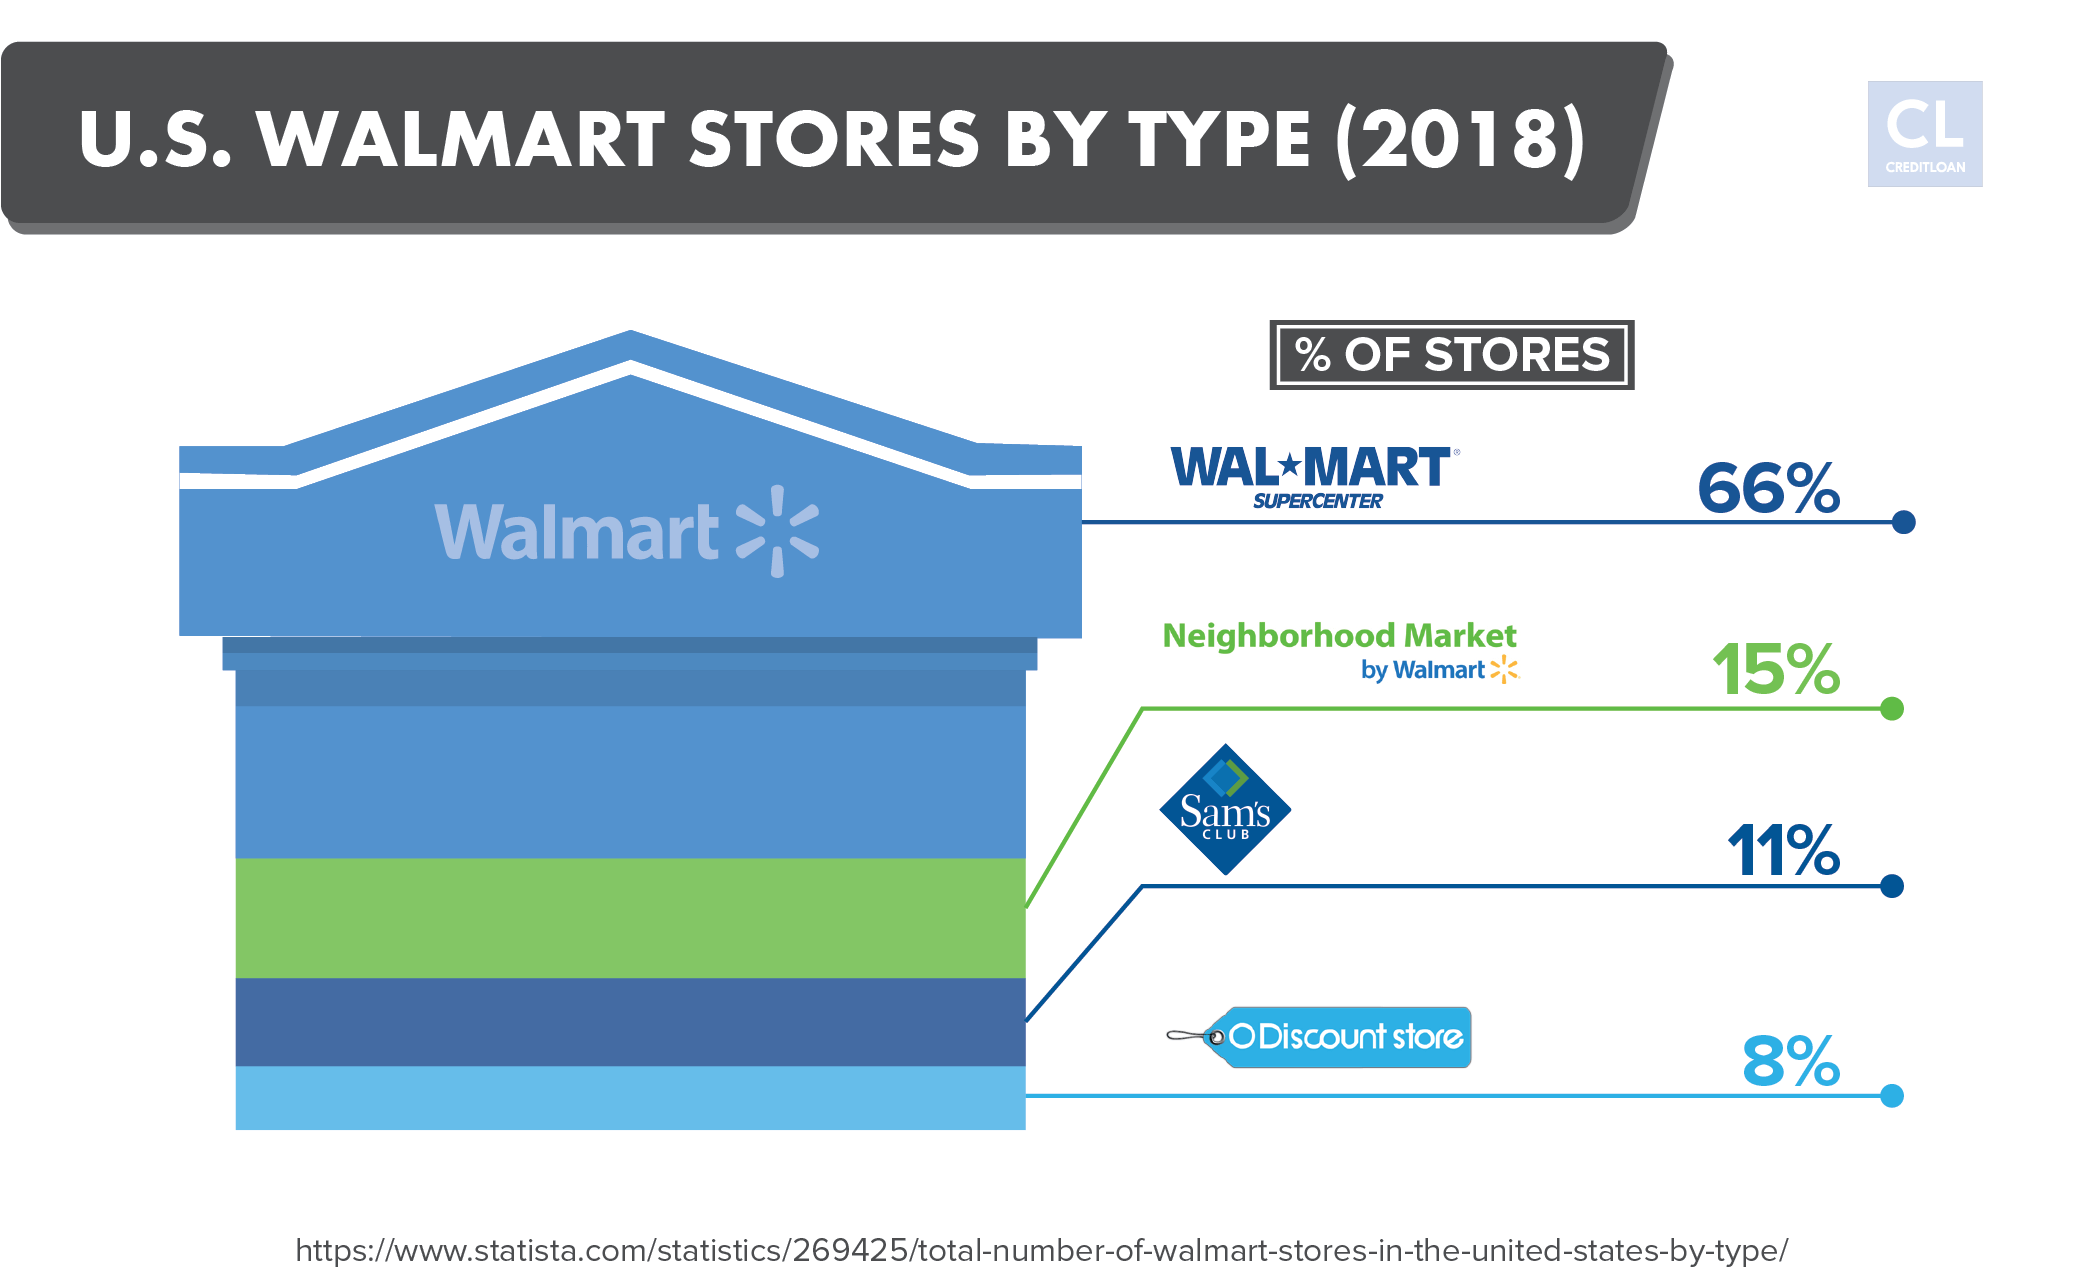 How to Become a Bargain-Hunting Pro at Walmart - CreditLoan com®